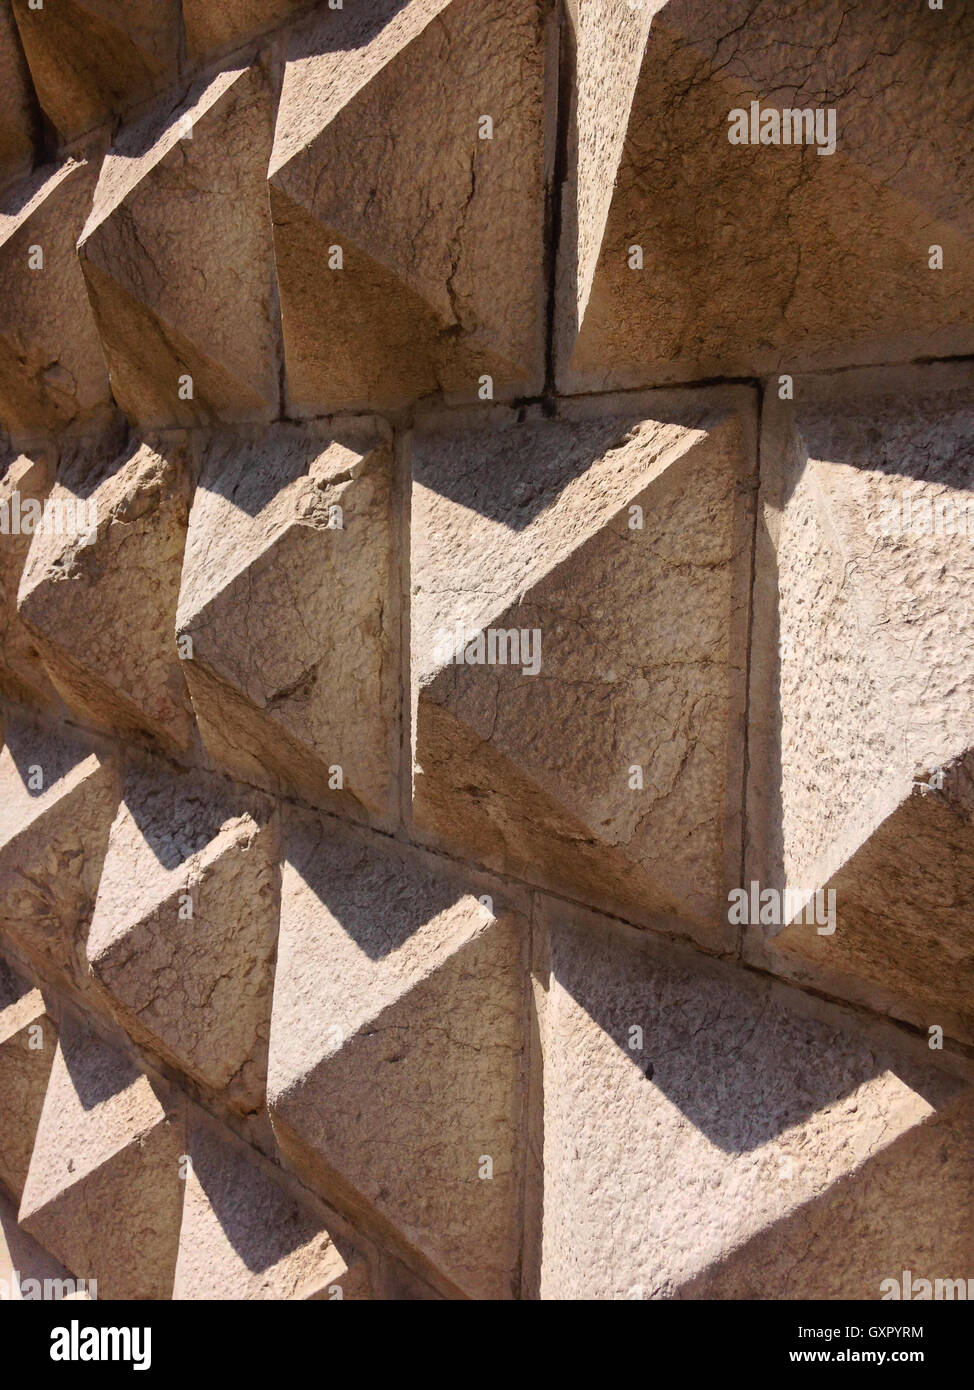 Marble diamond shapes / pyramids - Stock Image